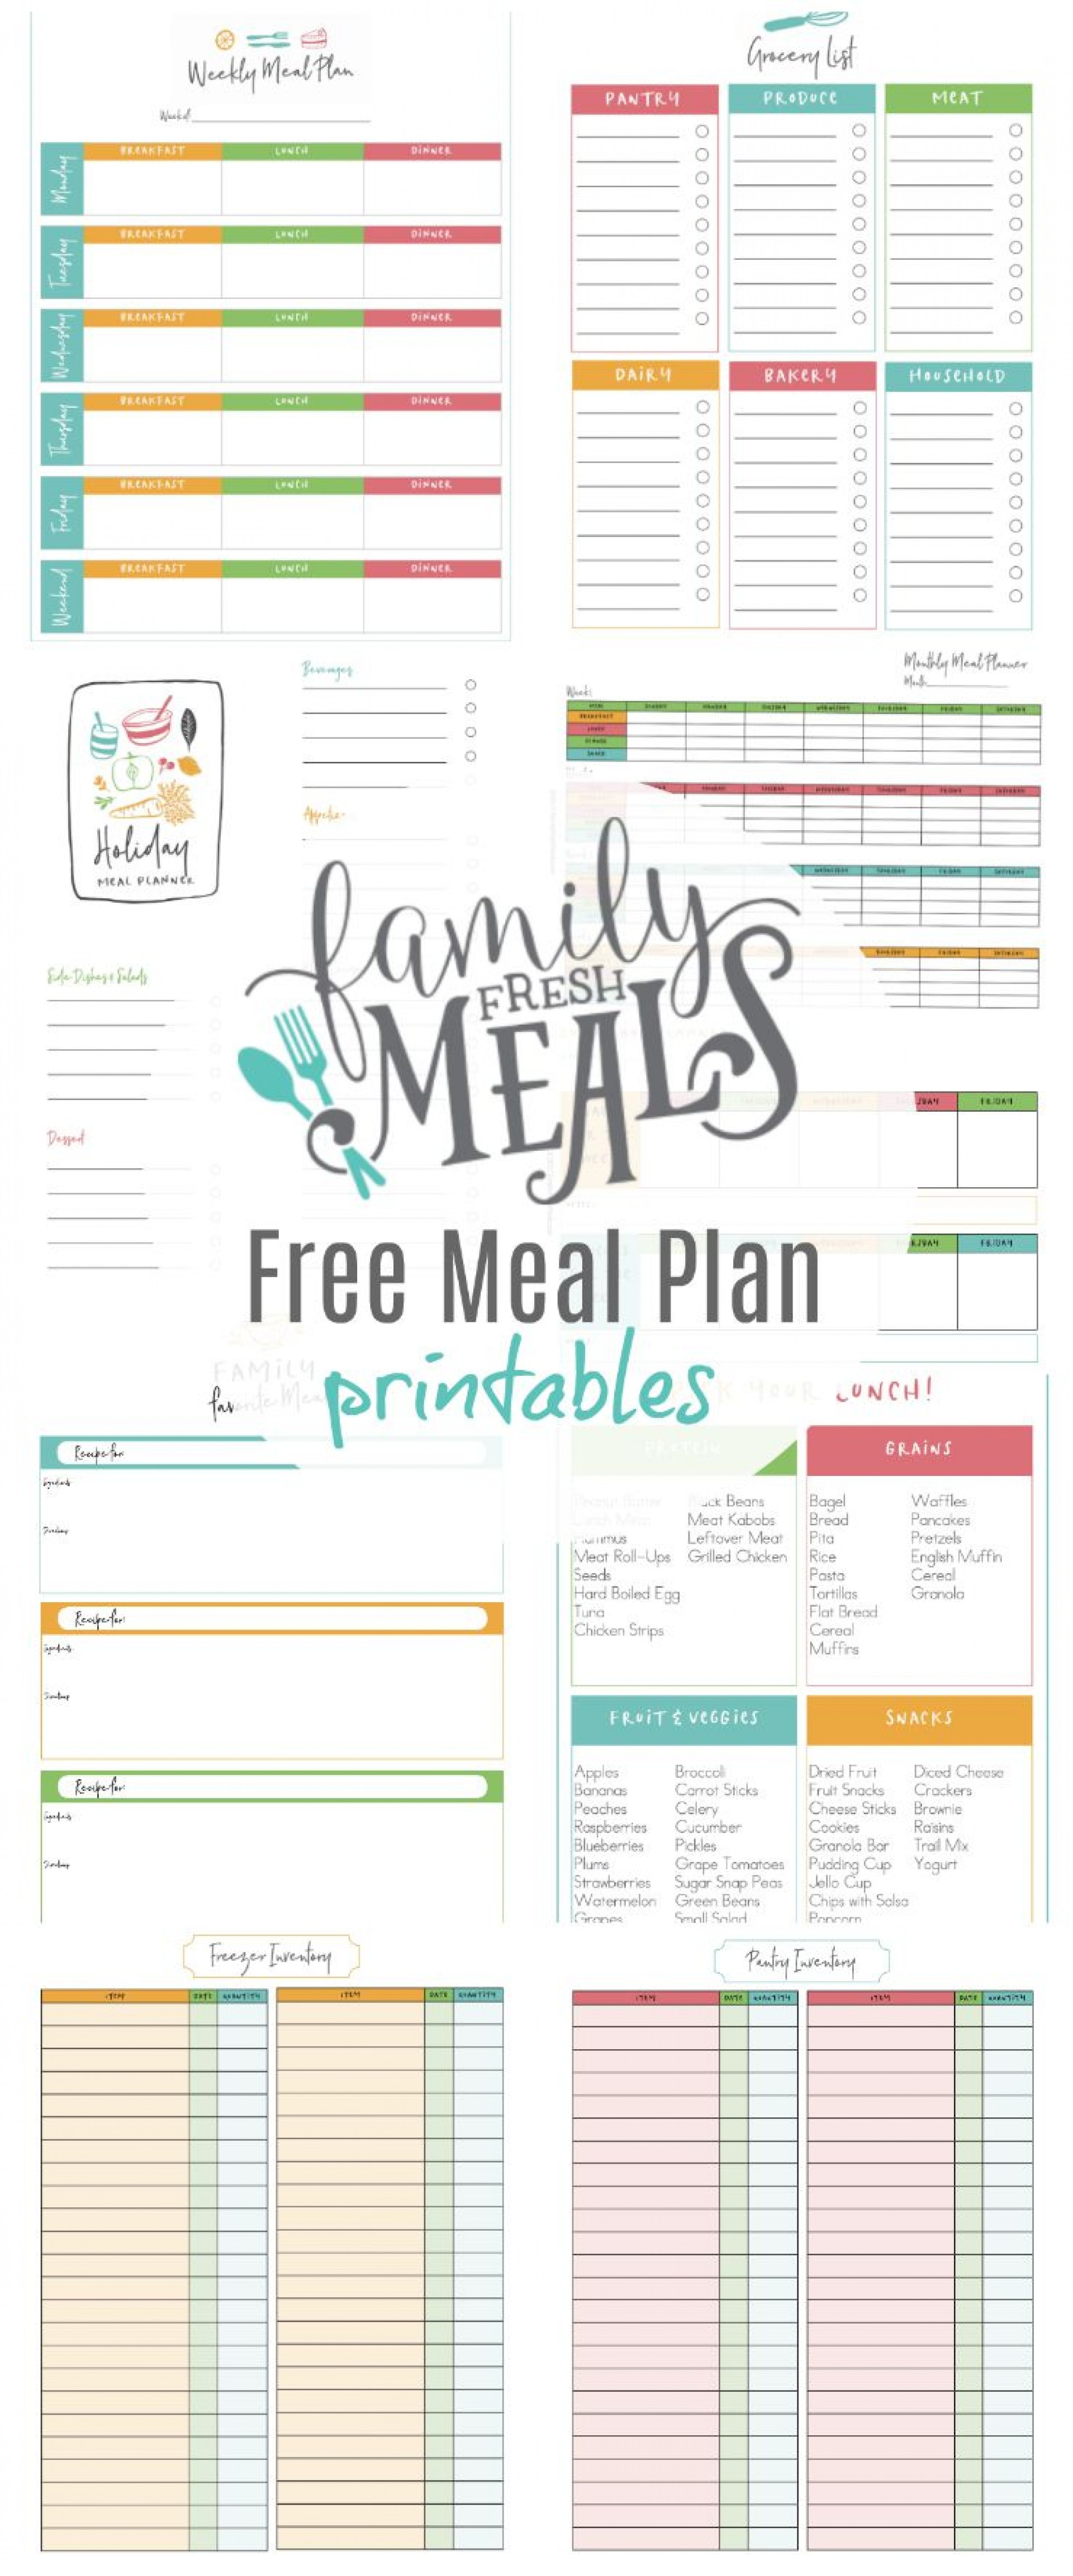 003 Stunning Free Meal Plan Template Concept  Templates Easy Keto Printable Planner For Weight Los1920